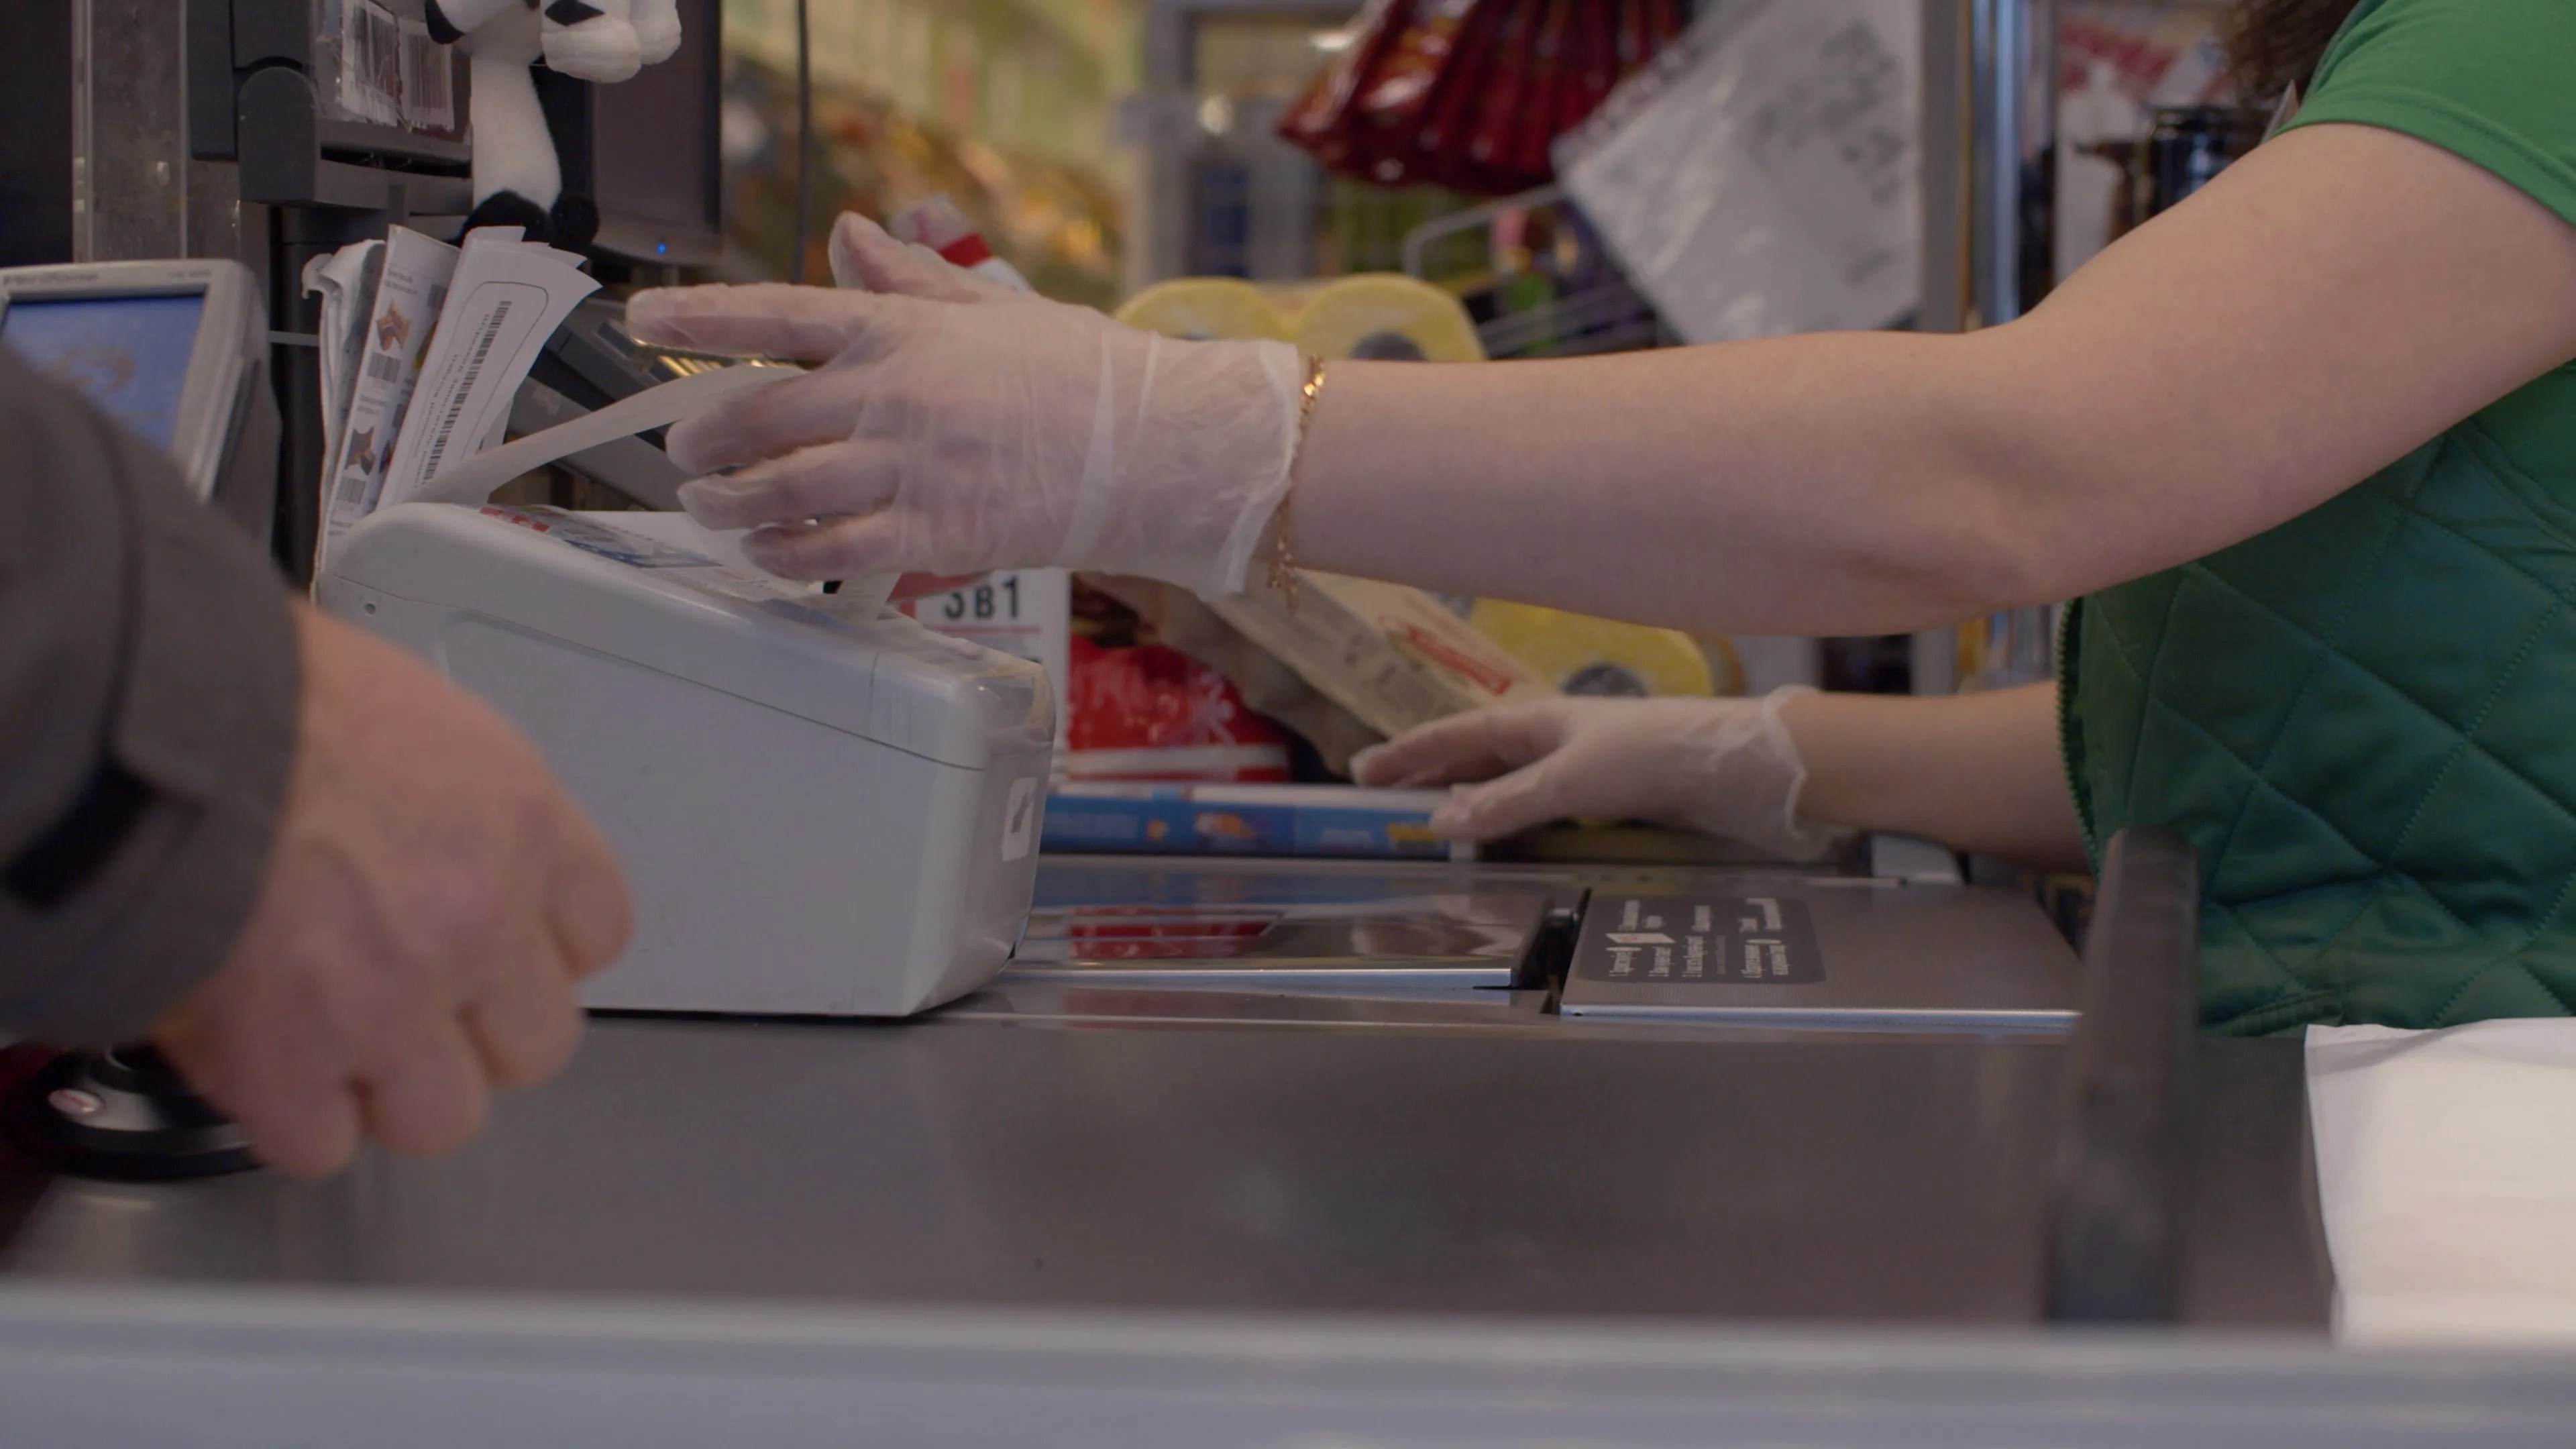 The Los Angeles County Board of Supervisors approved an ordinance that will require national grocery and drug retail employers in unincorporated areas of the county to pay their frontline workers an additional $5 per hour in hero pay for the next 120 days.